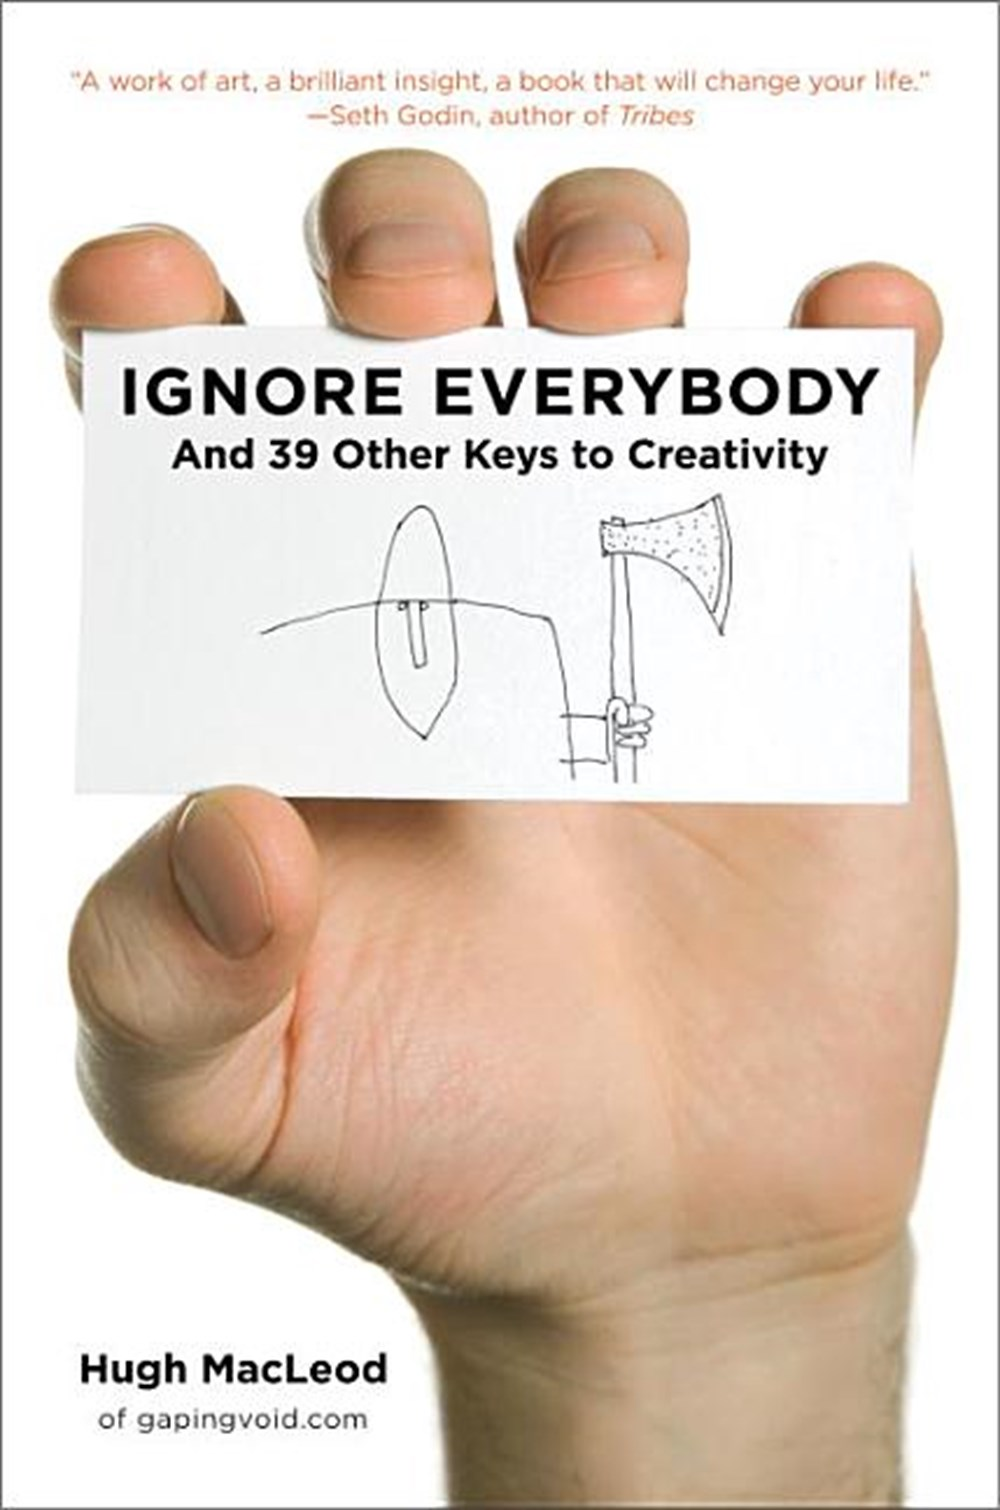 Ignore Everybody And 39 Other Keys to Creativity